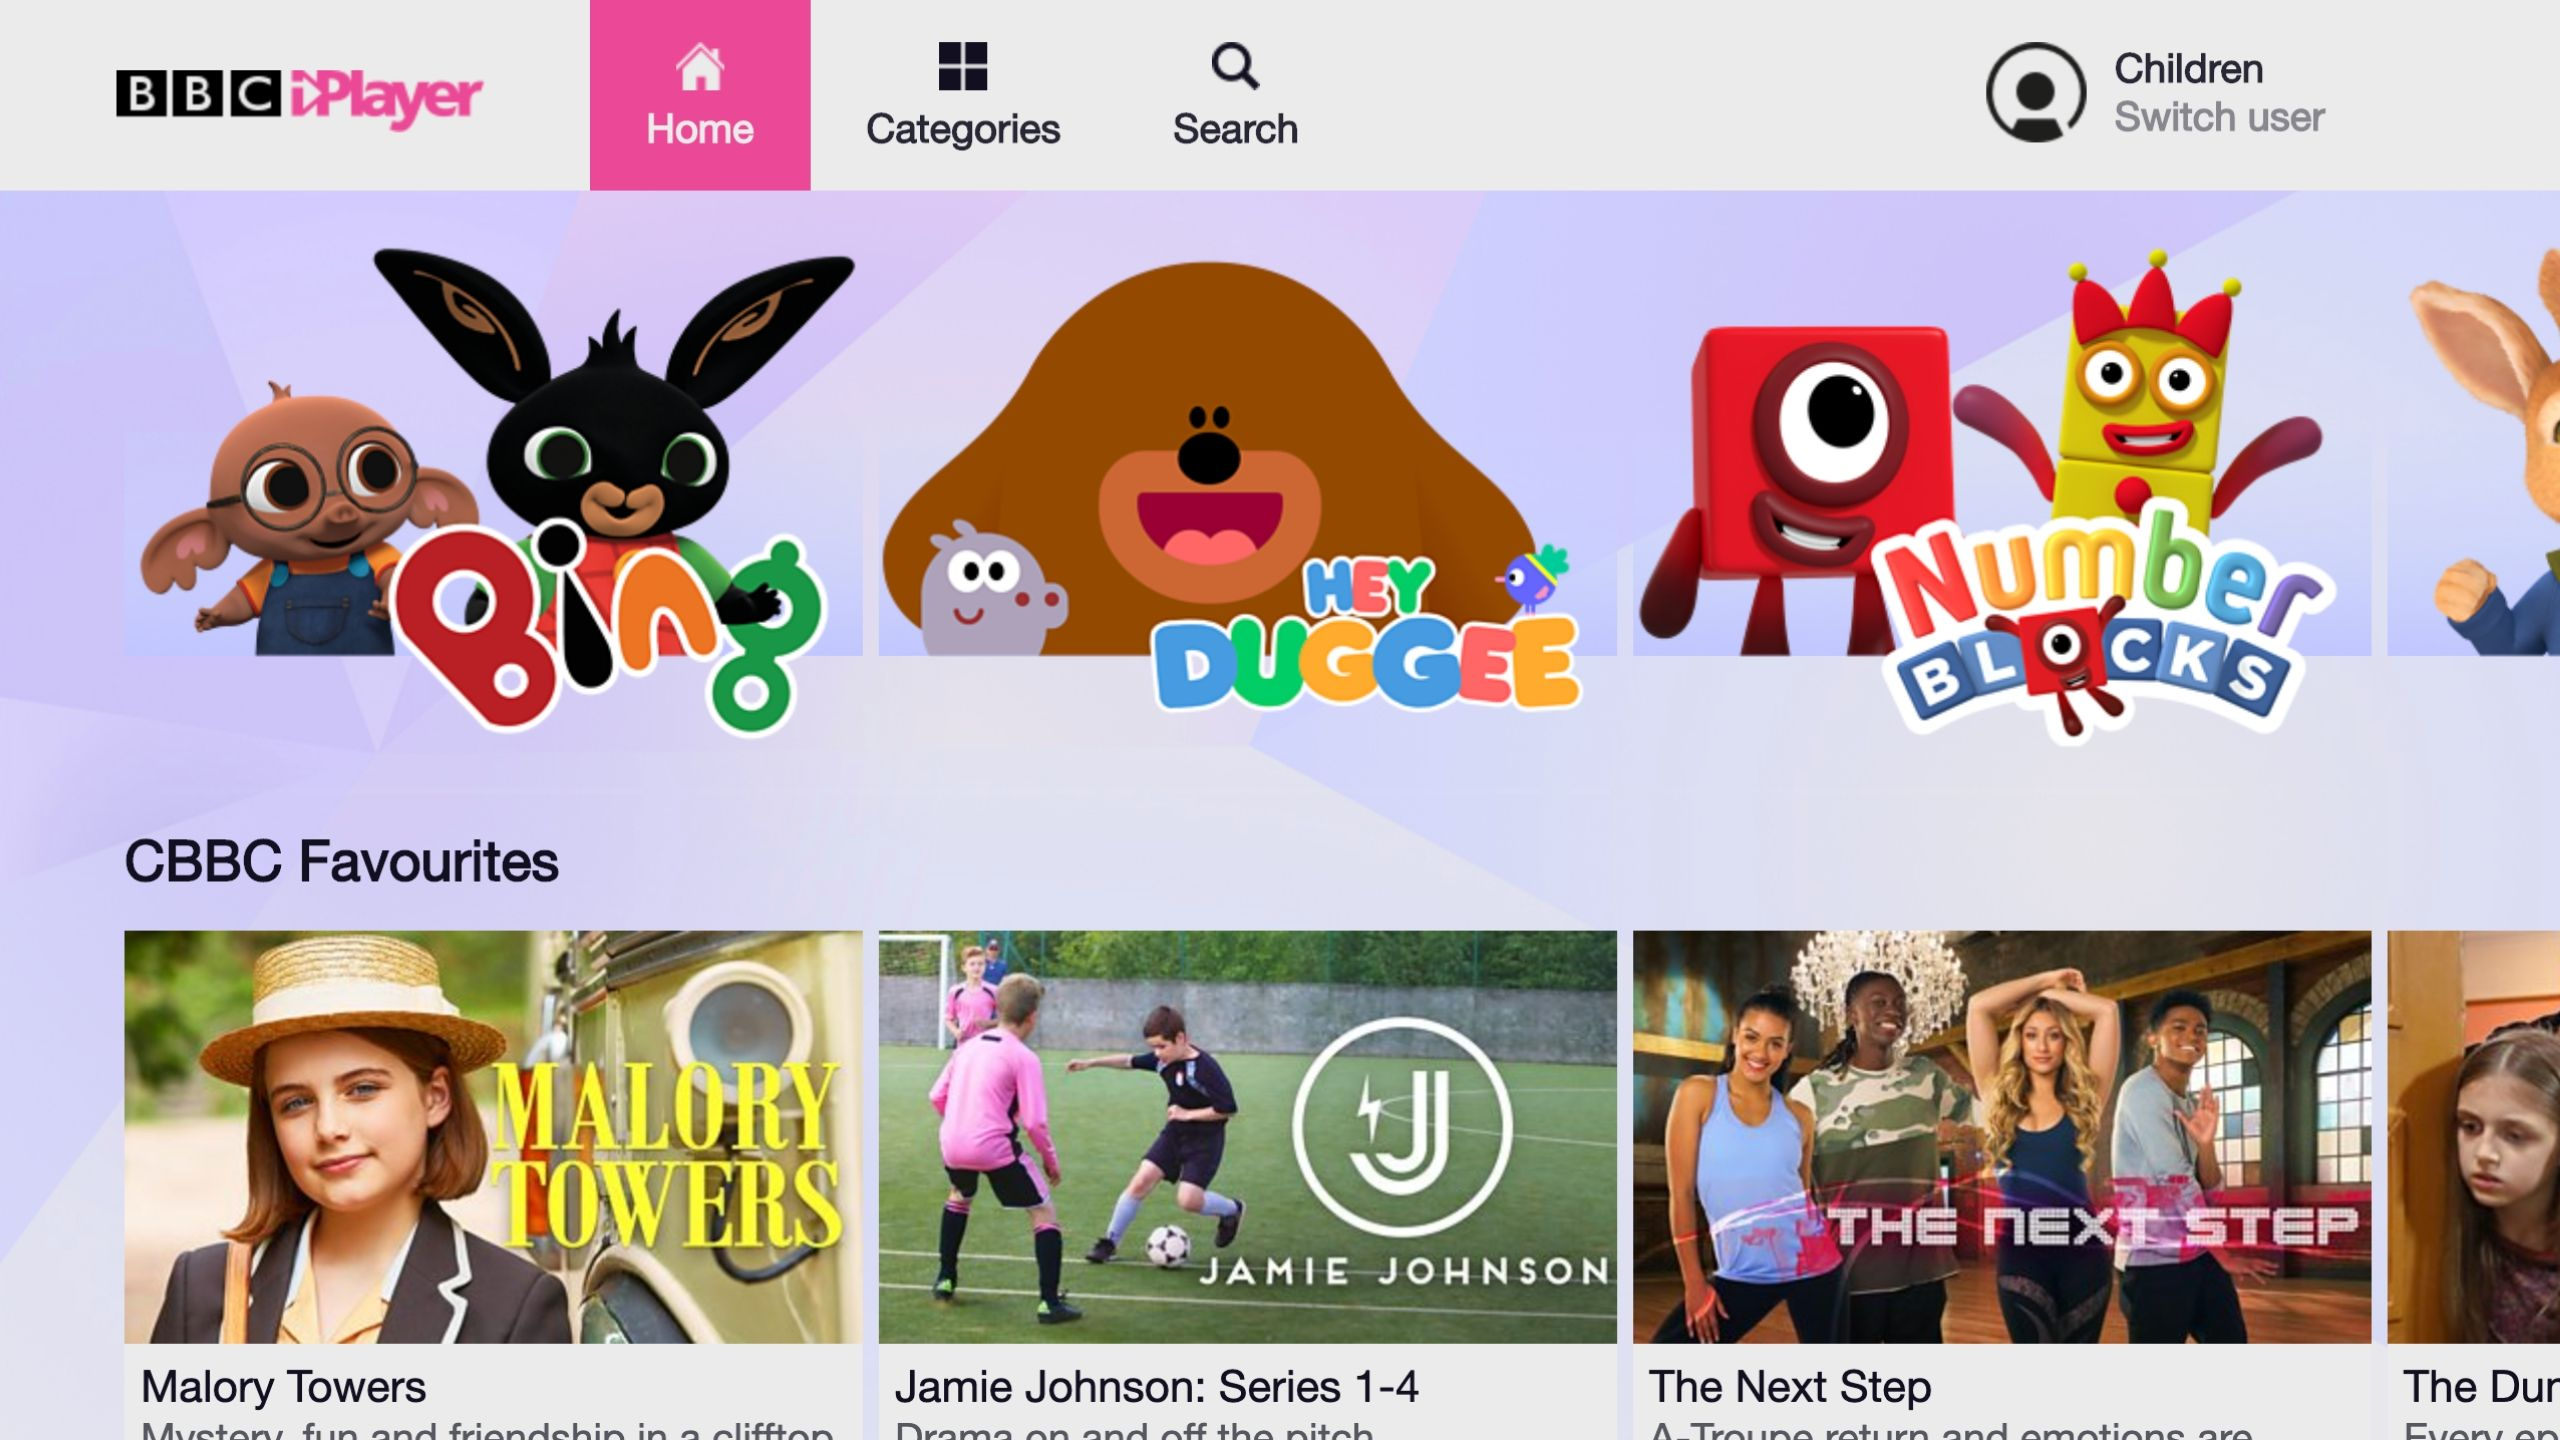 Childrens mode on BBC iPlayer, light purple background with a carousel of kids content to choose from